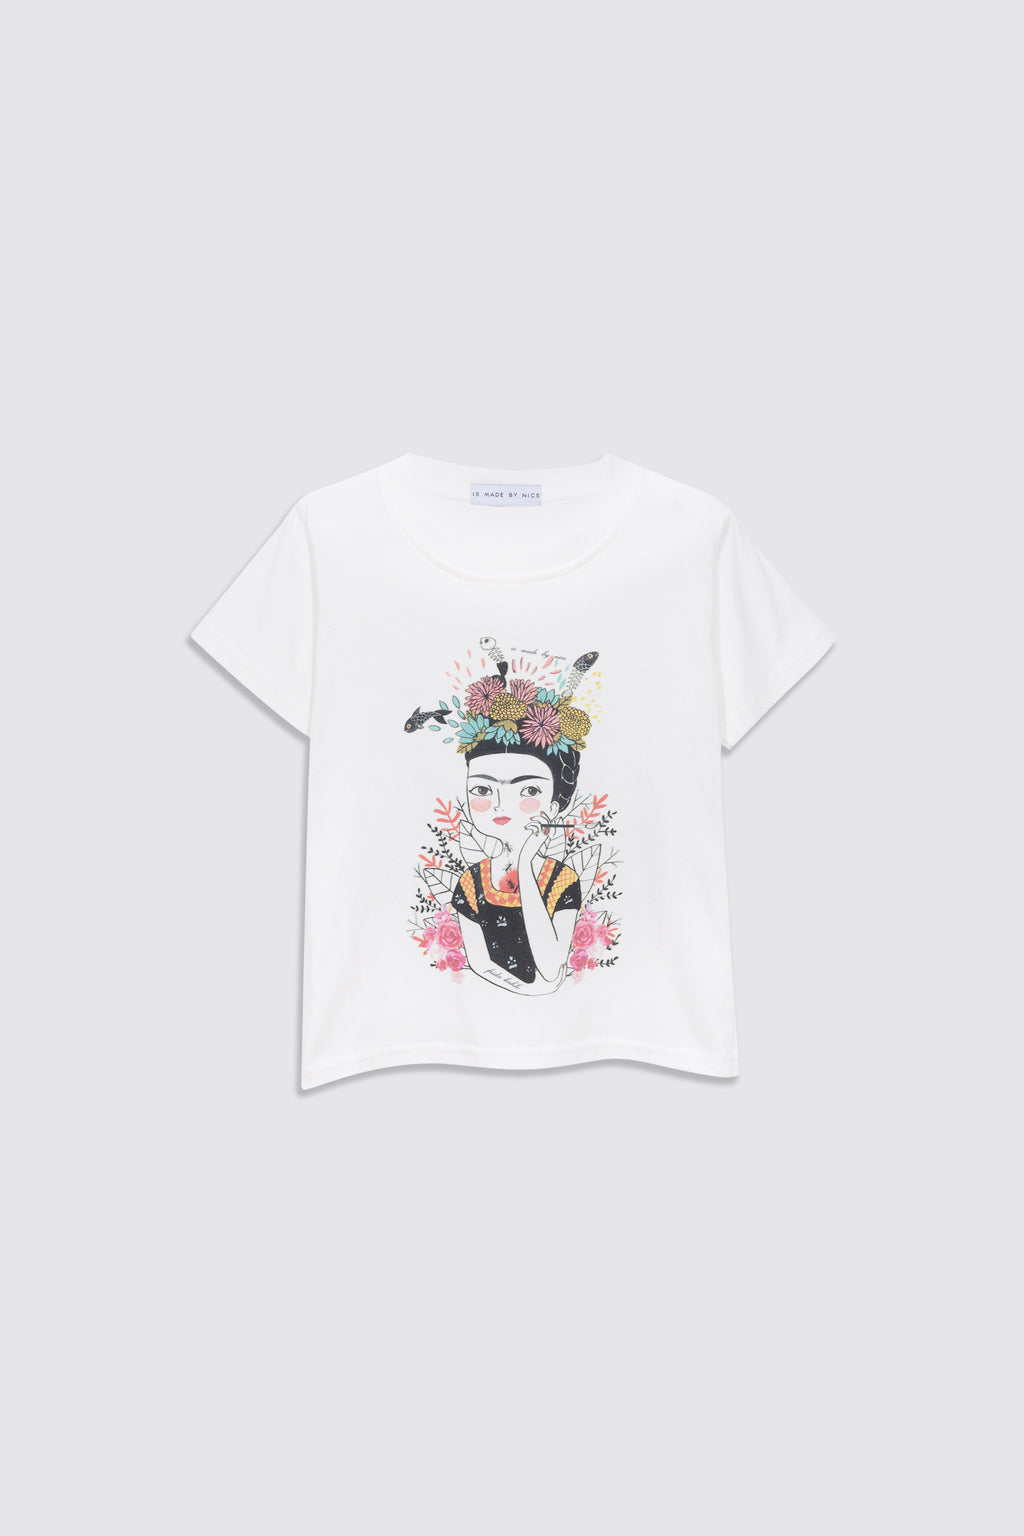 [Made By Nics] MBN-Frida Kahlo T-Shirt [9M-9Y]